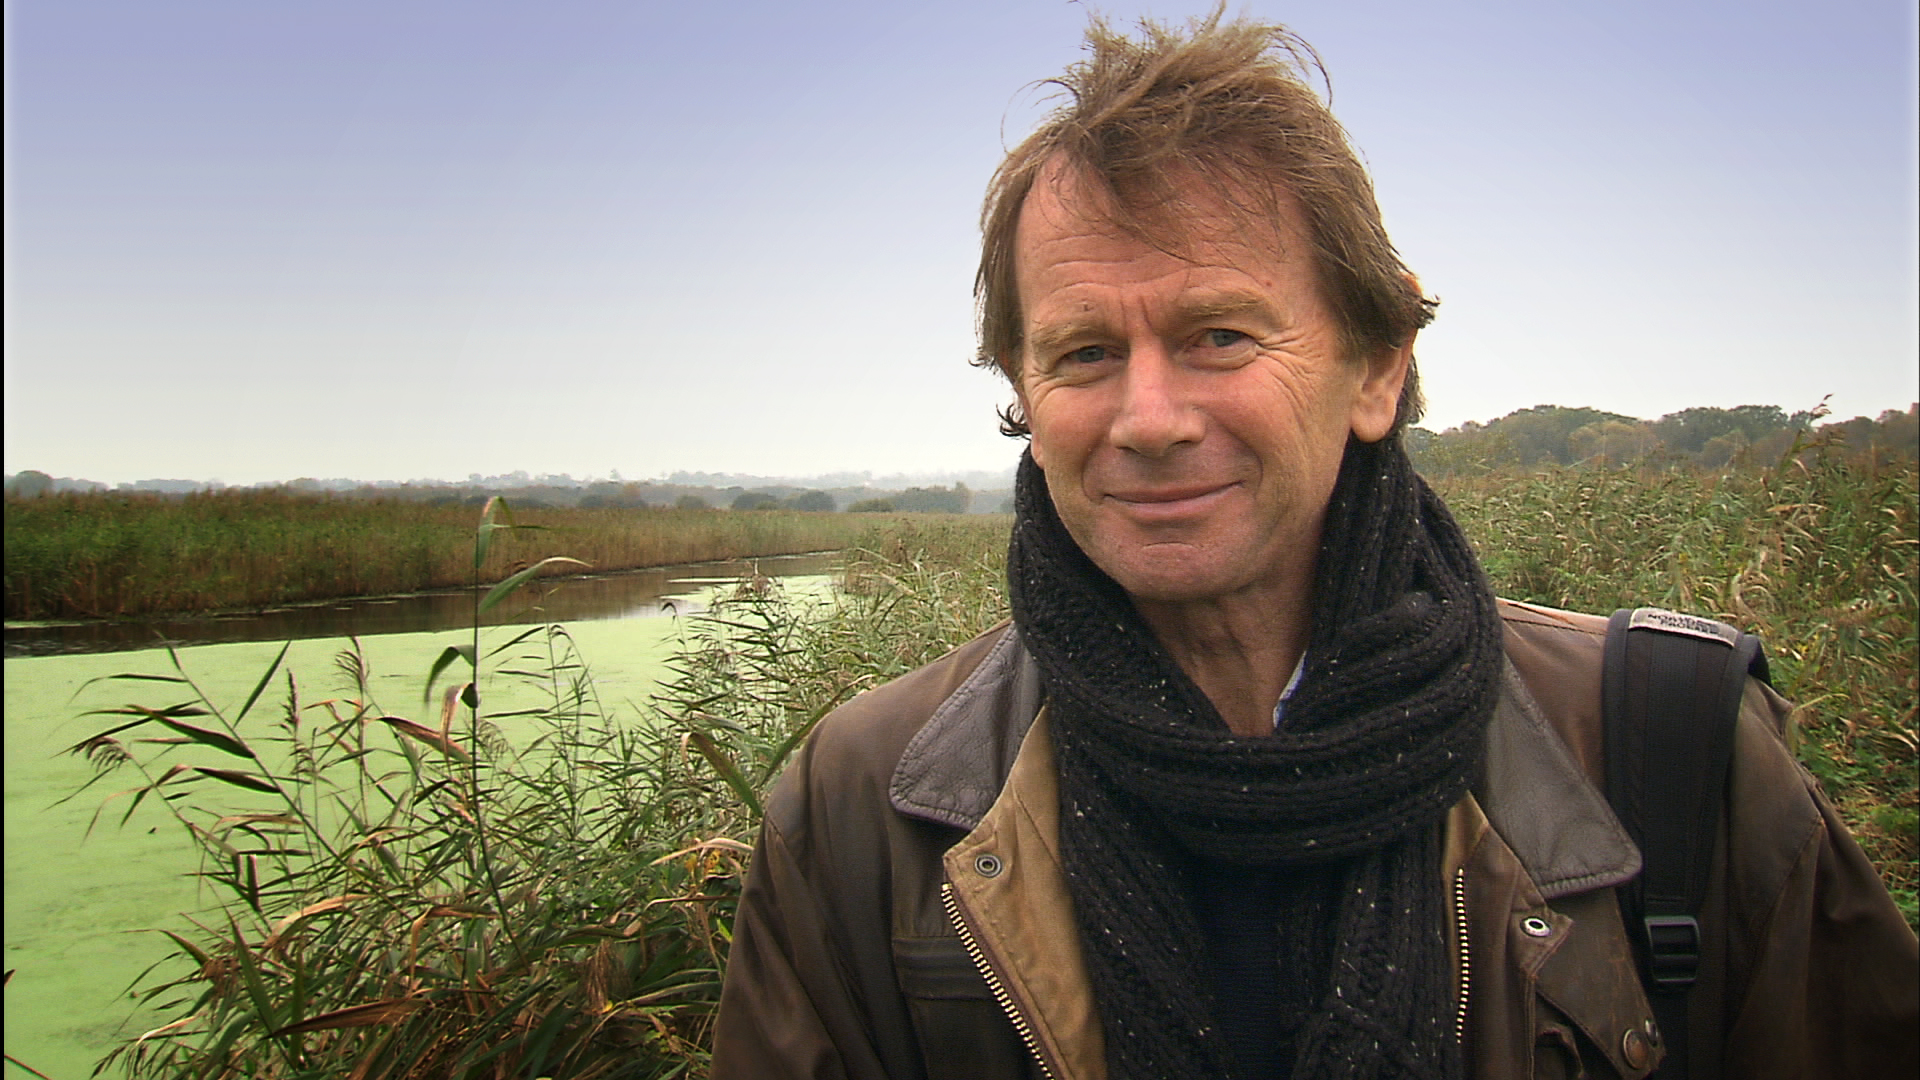 Michael Wood: Athelstan and the Making of England